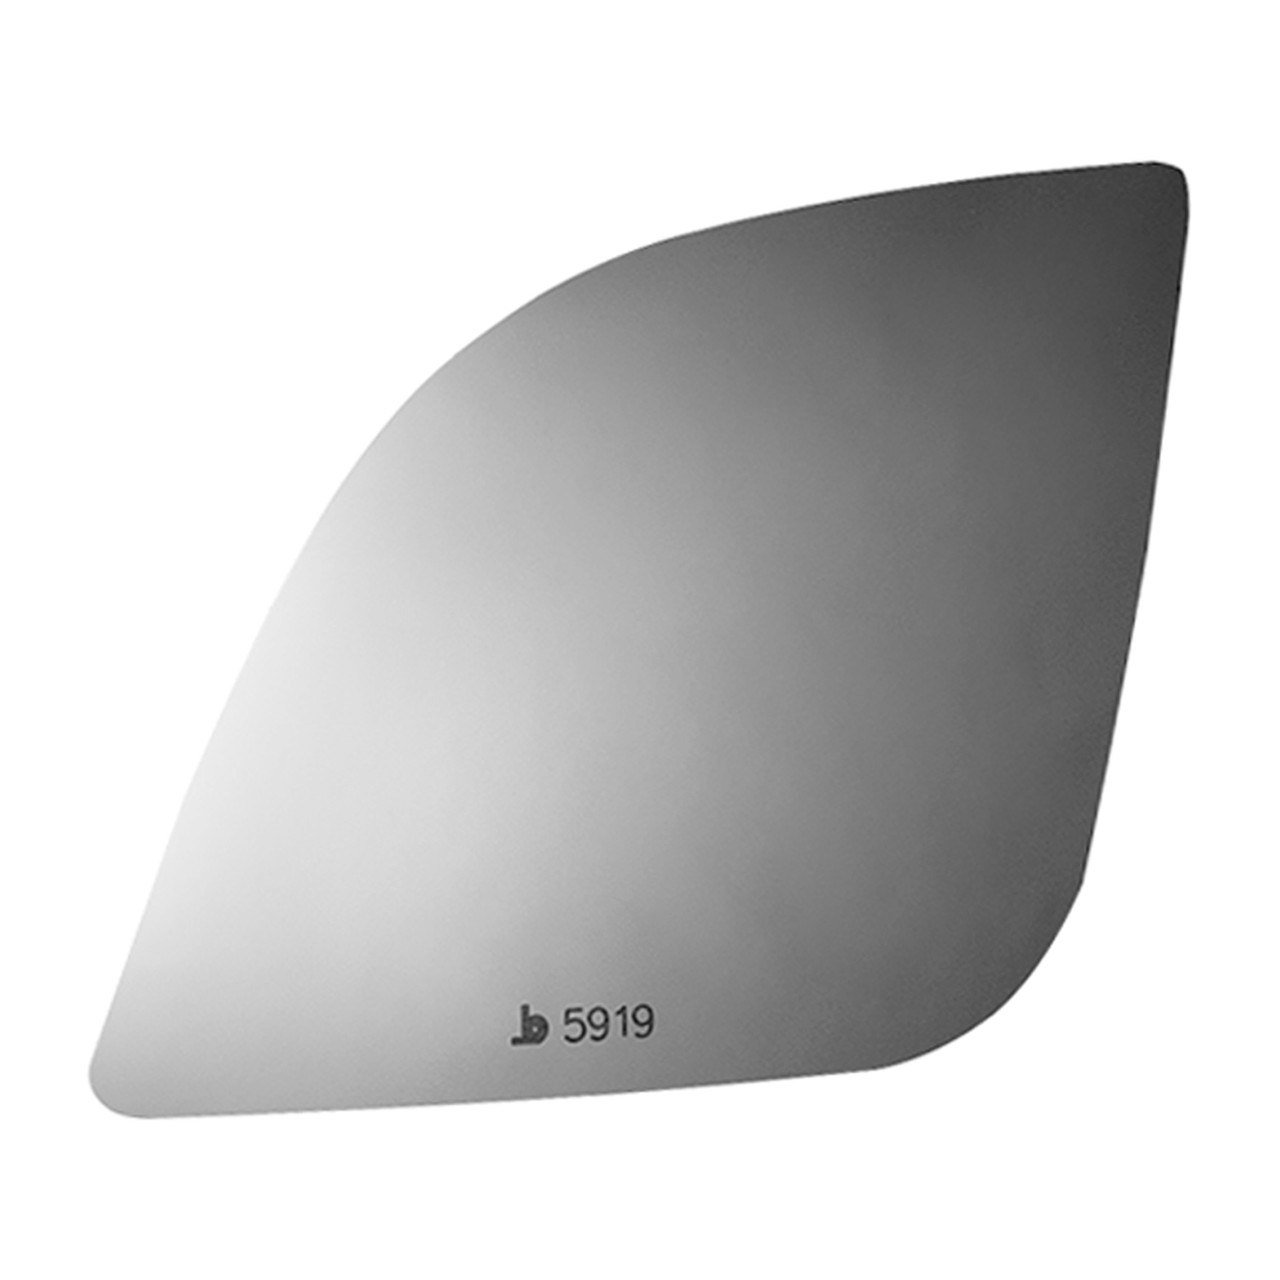 2019 FORD RANGER Driver Side Mirror Glass - 5919